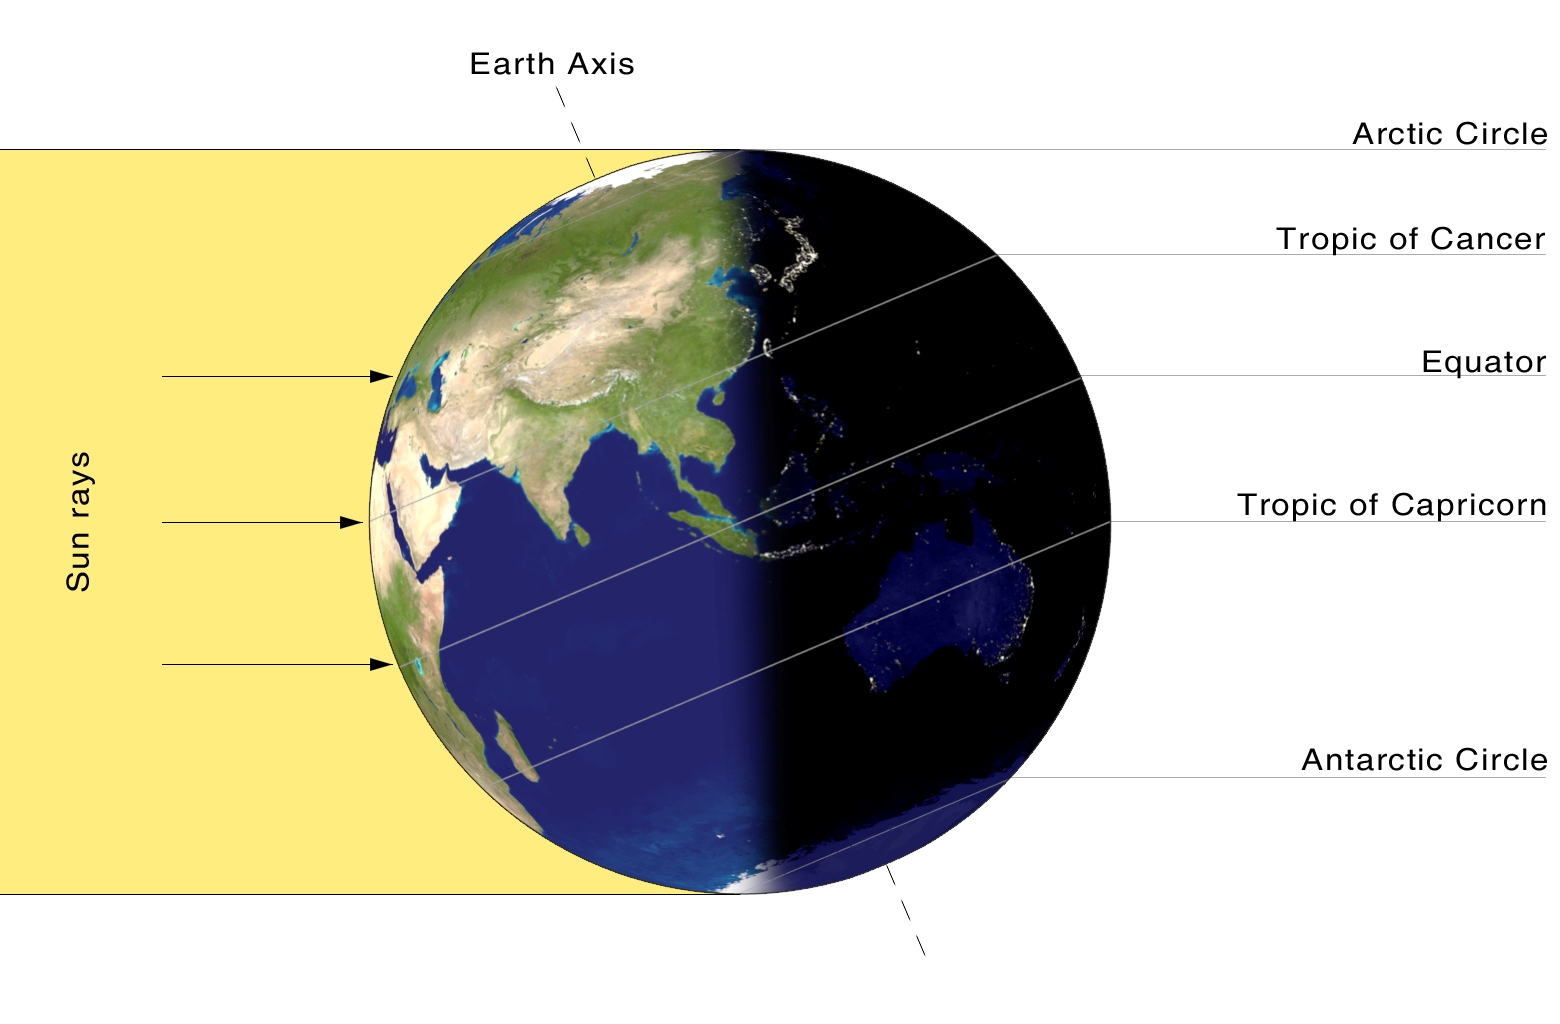 For more on the Vernal Equinox, click here.